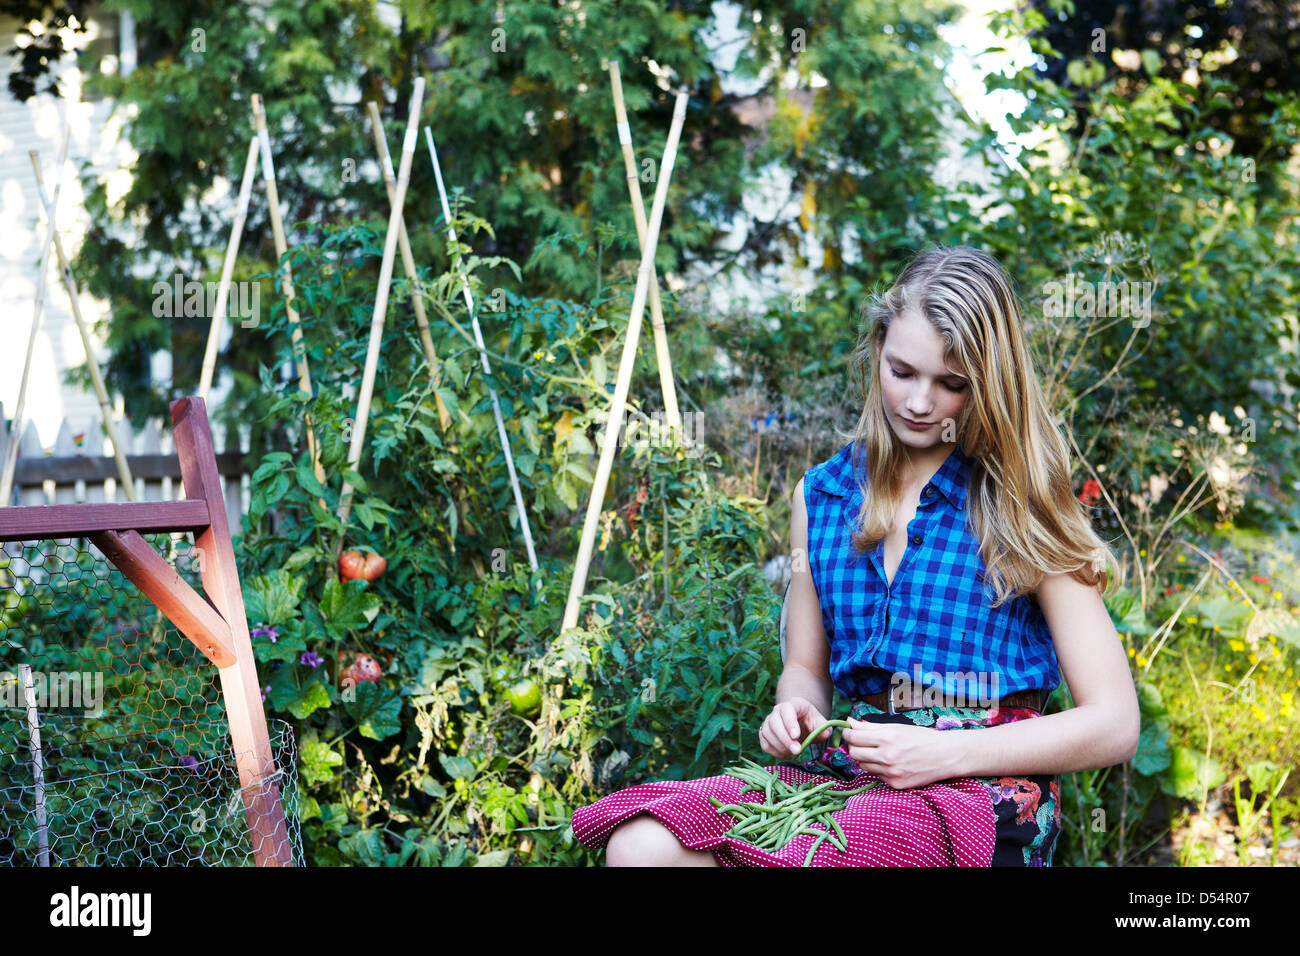 Teen girl in urban garden - Stock Image